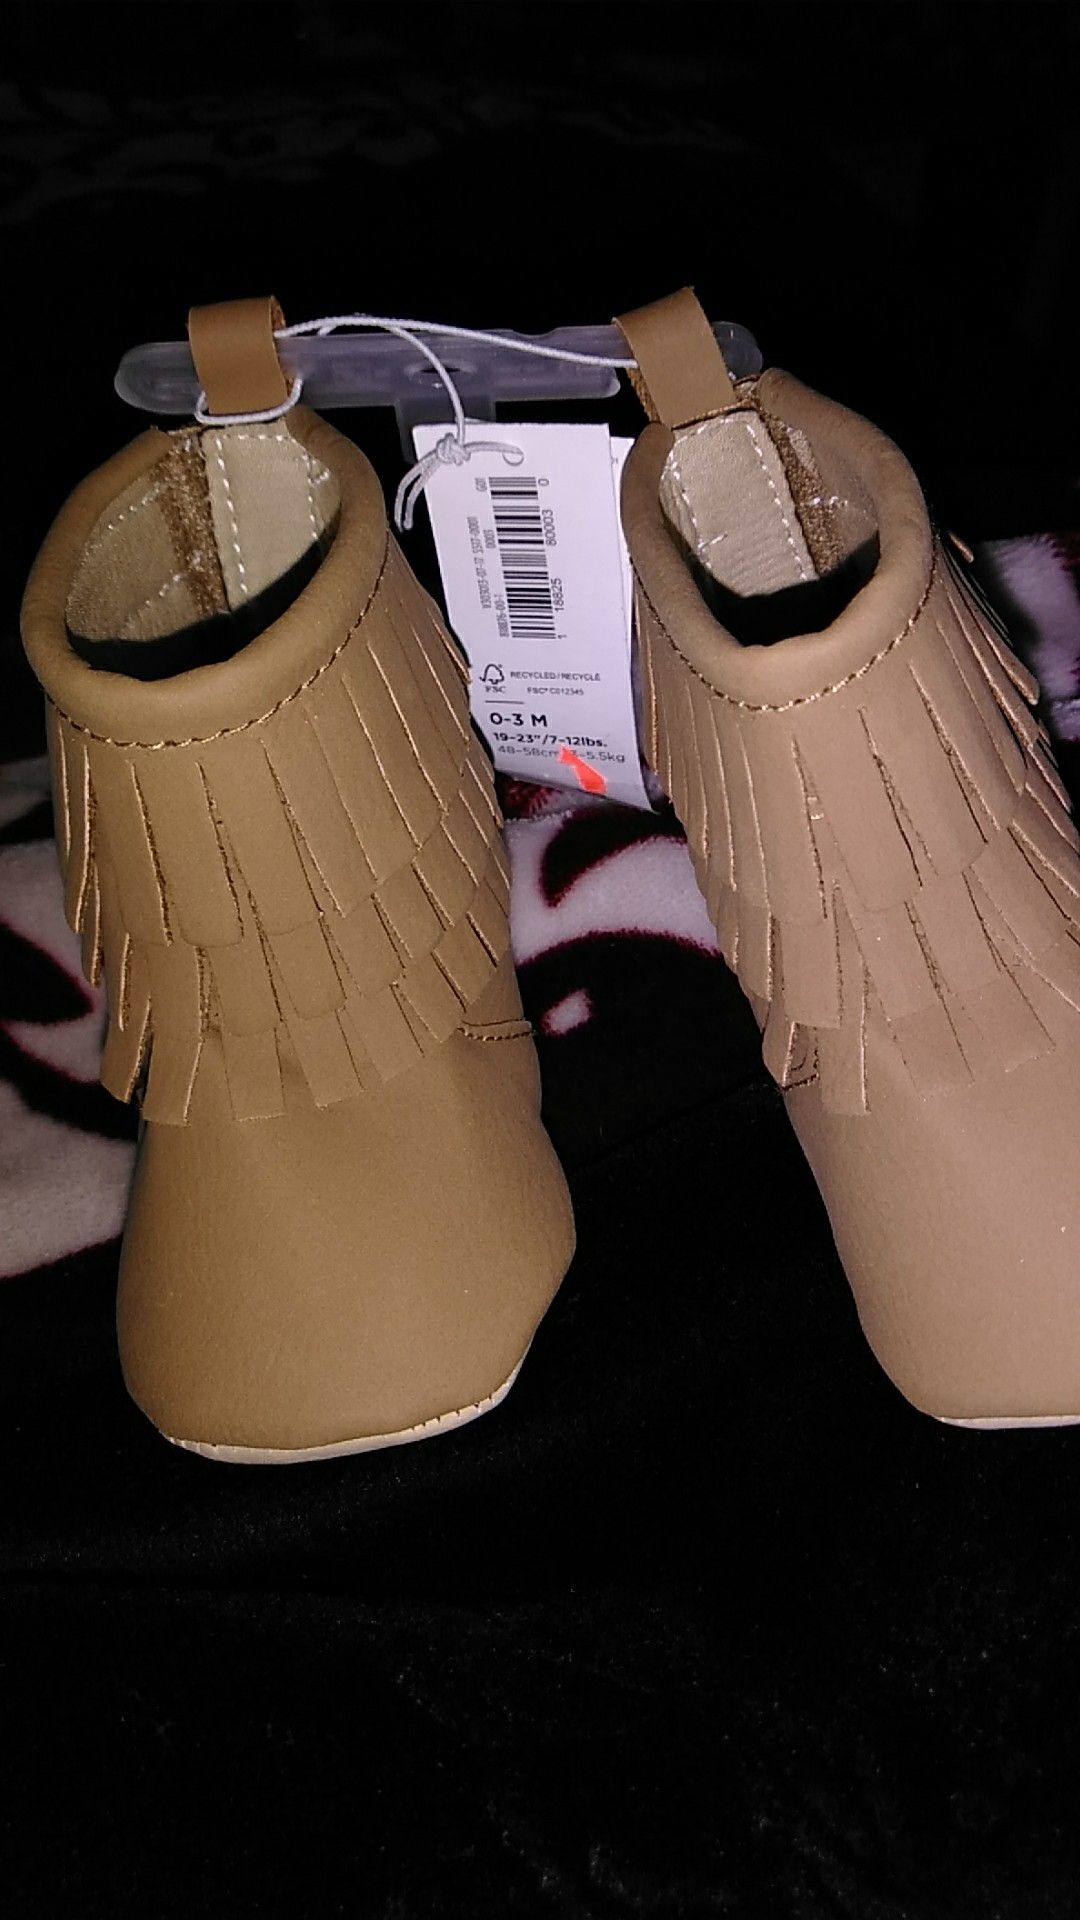 0-3 month baby boots